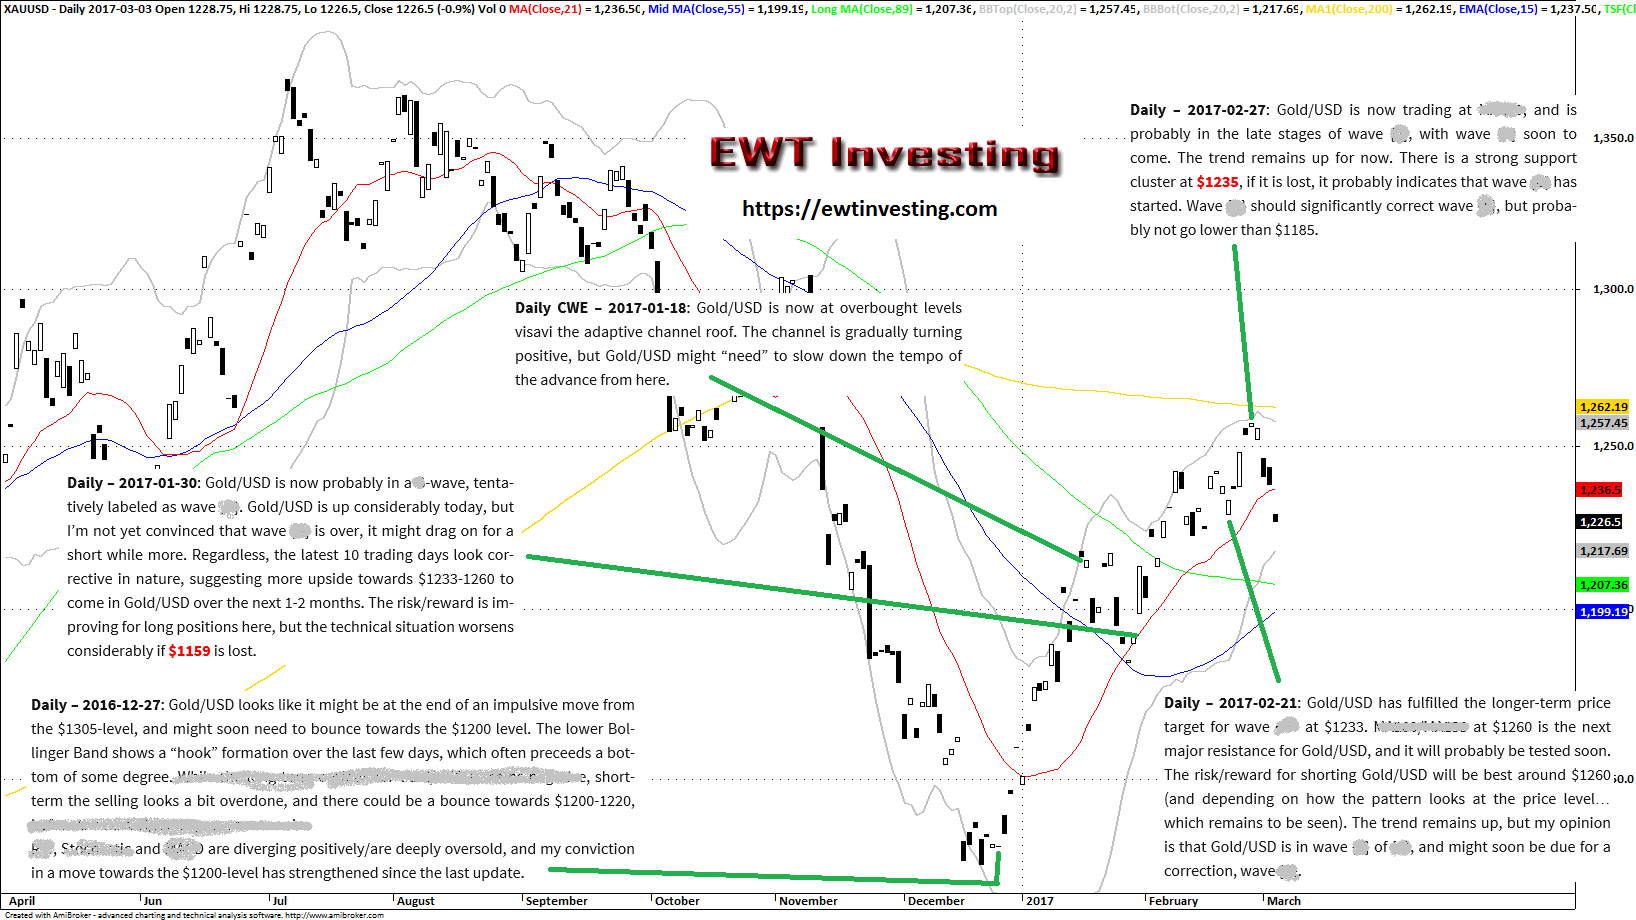 Gold/USD Elliott Wave Theory Technical Analysis EWT Investing